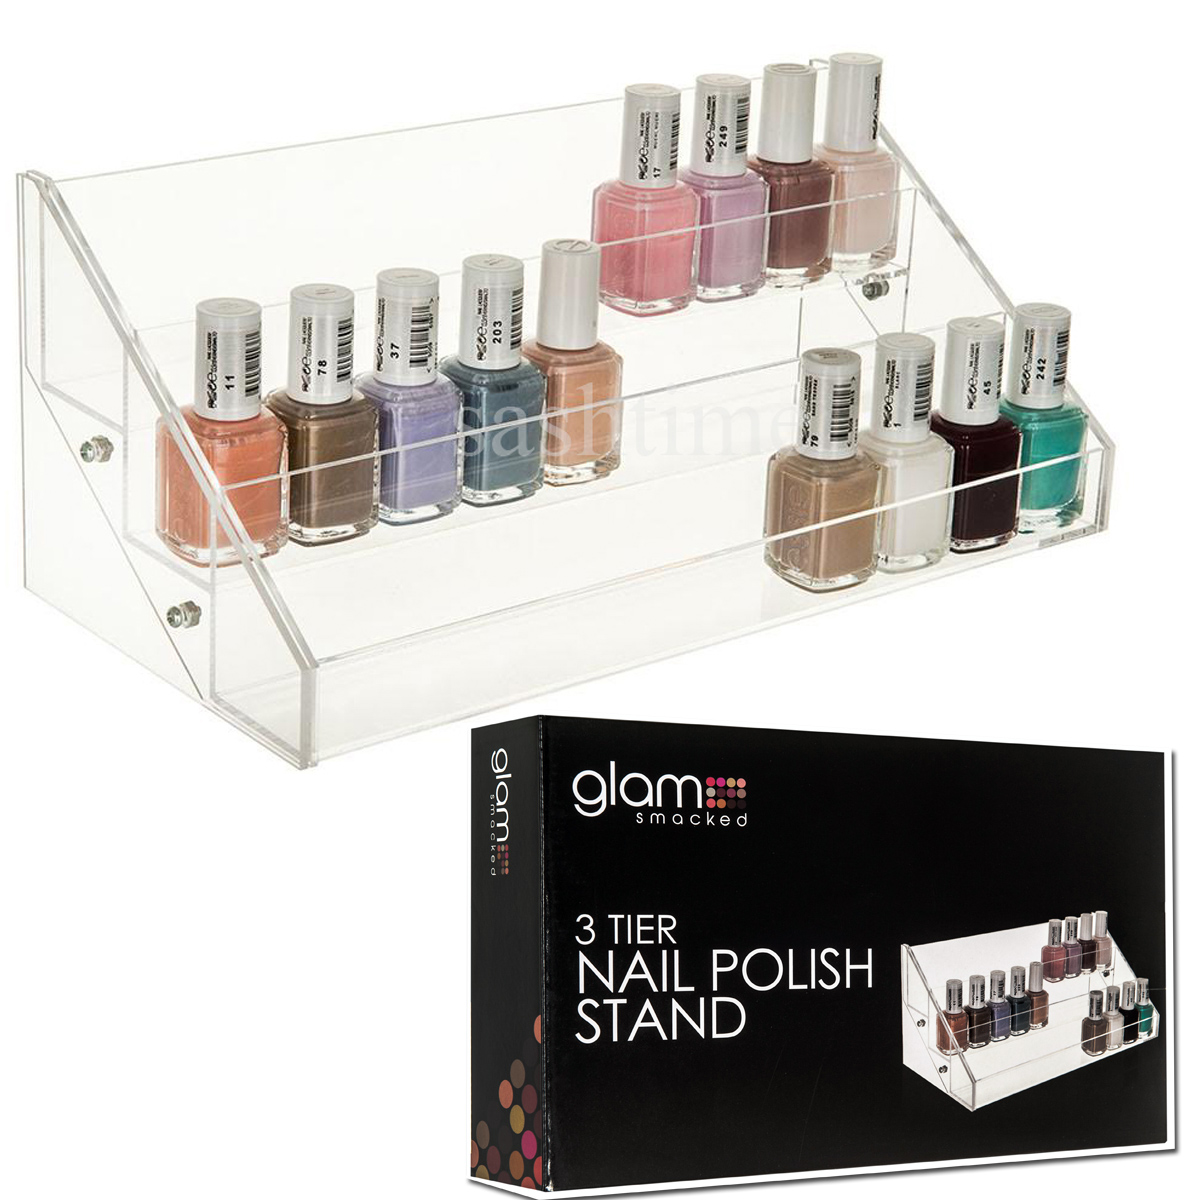 Exhibition Stand Builders Poland : Tier clear acrylic nail polish cosmetic varnish display